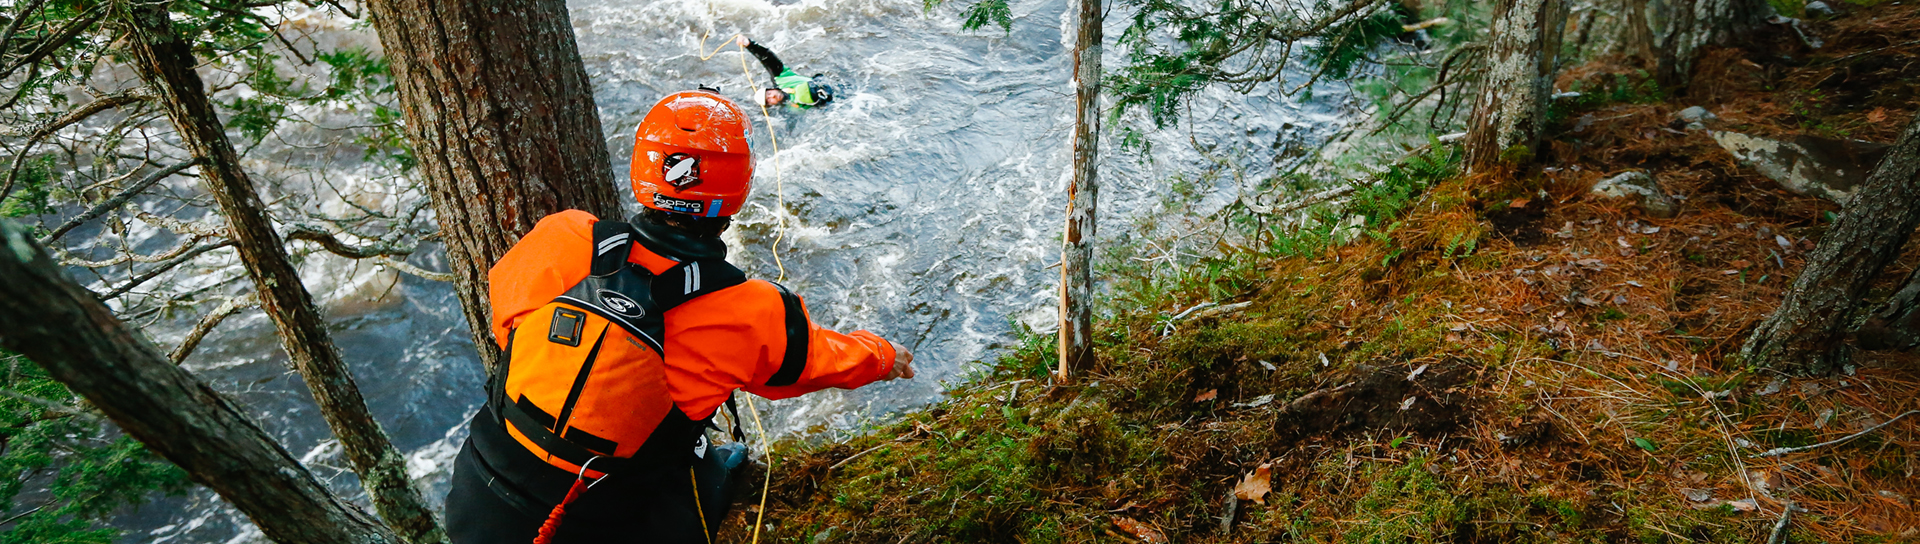 Boreal River Rescue - Image 7